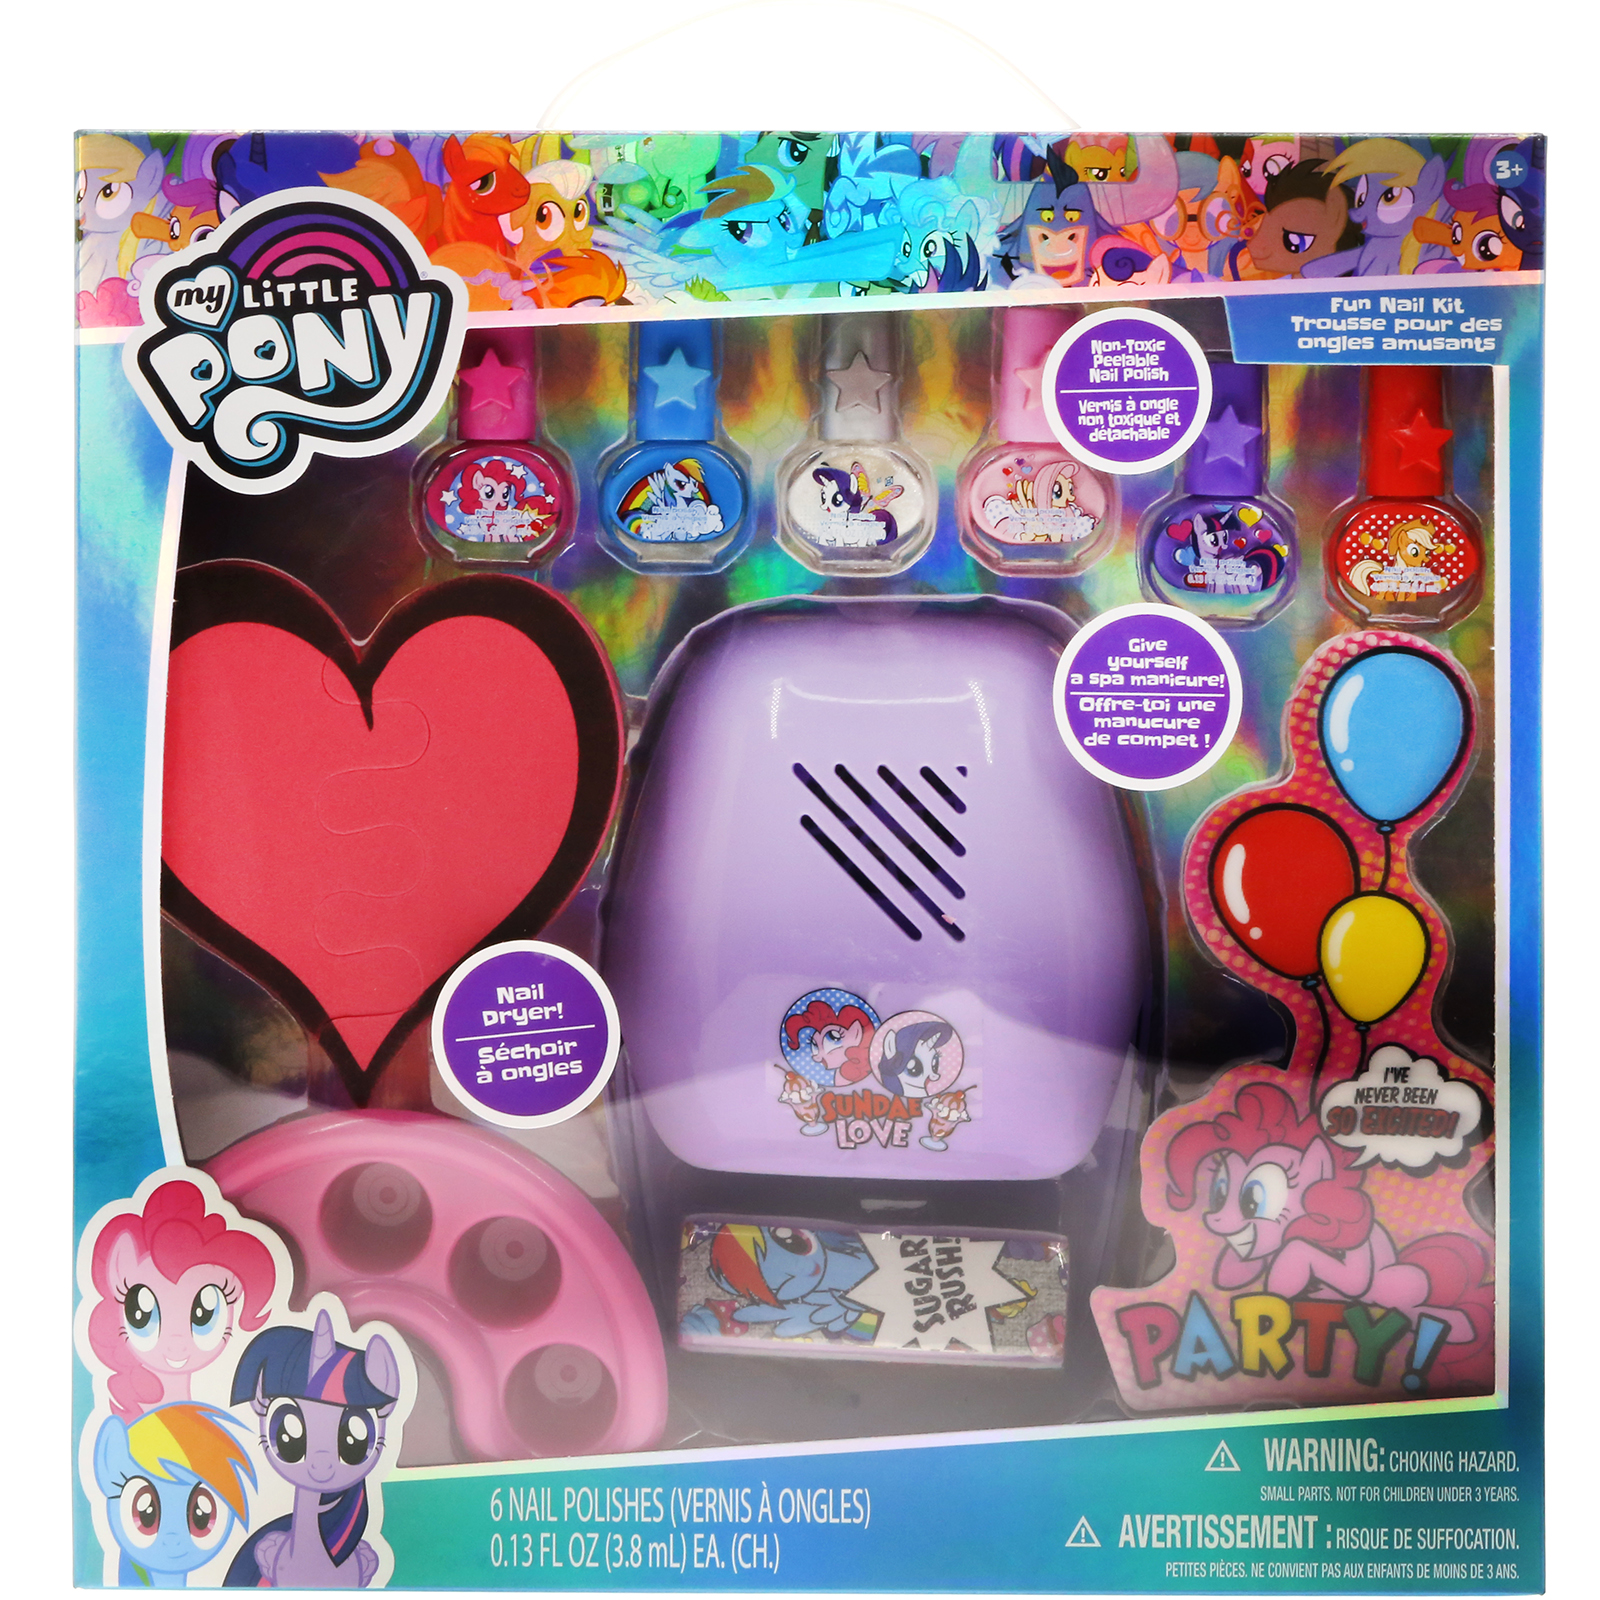 My Little Pony Fun Nail Kit with Nail Dryer by Townley Inc